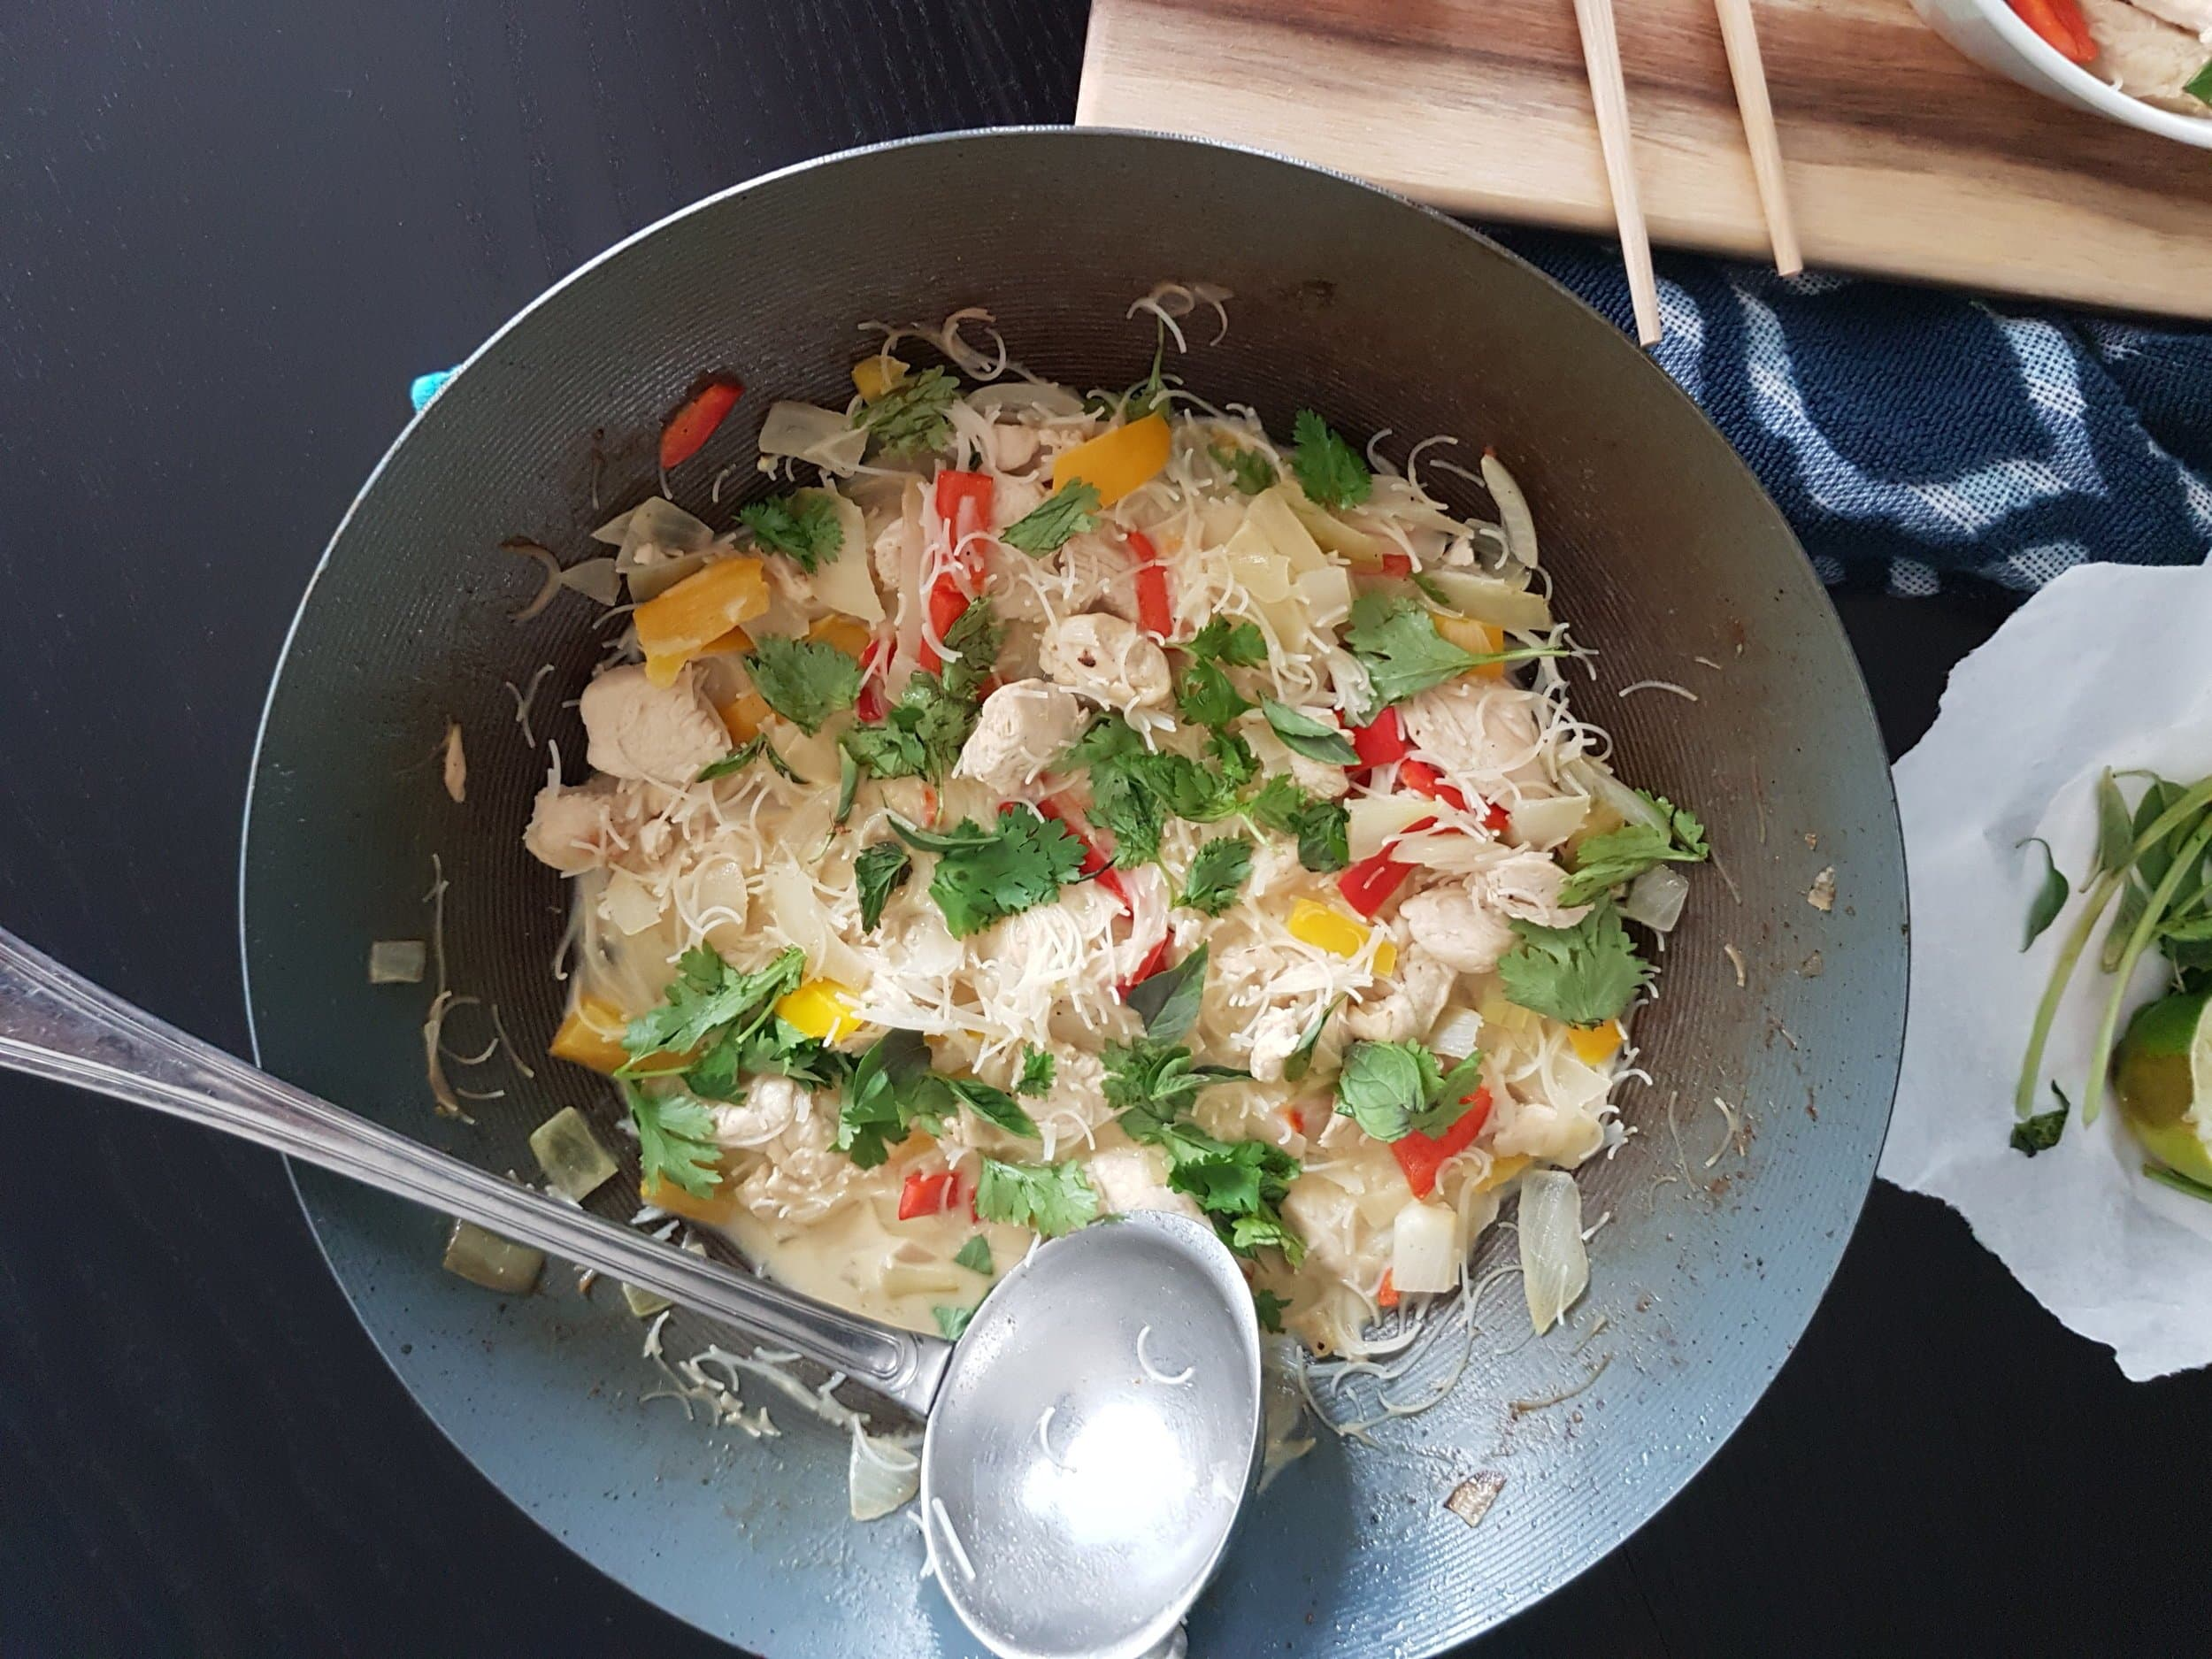 A wok full of Thai Green Coconut Curry Chicken with Rice Noodles.